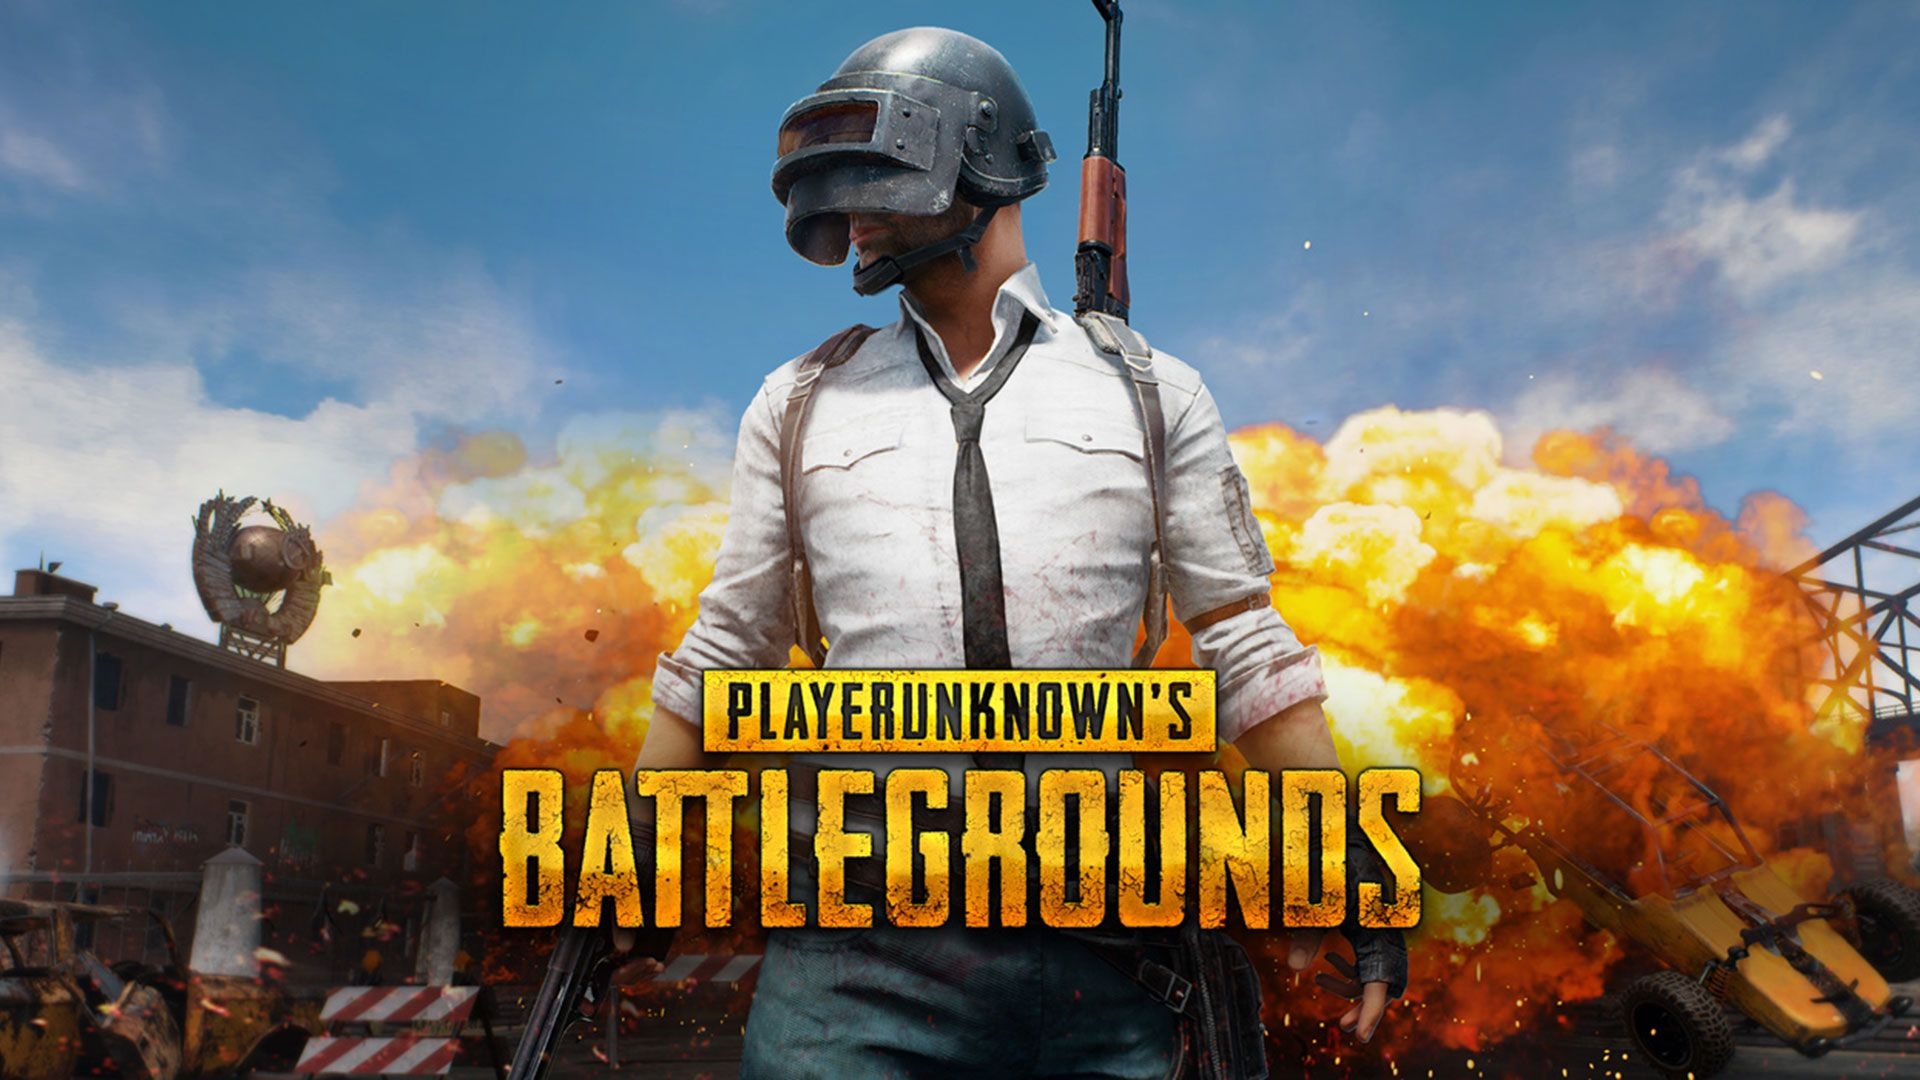 Wallpaper Of Pubg Mobile: Pubg Wallpapers Full Hd On Wallpaper 1080p HD